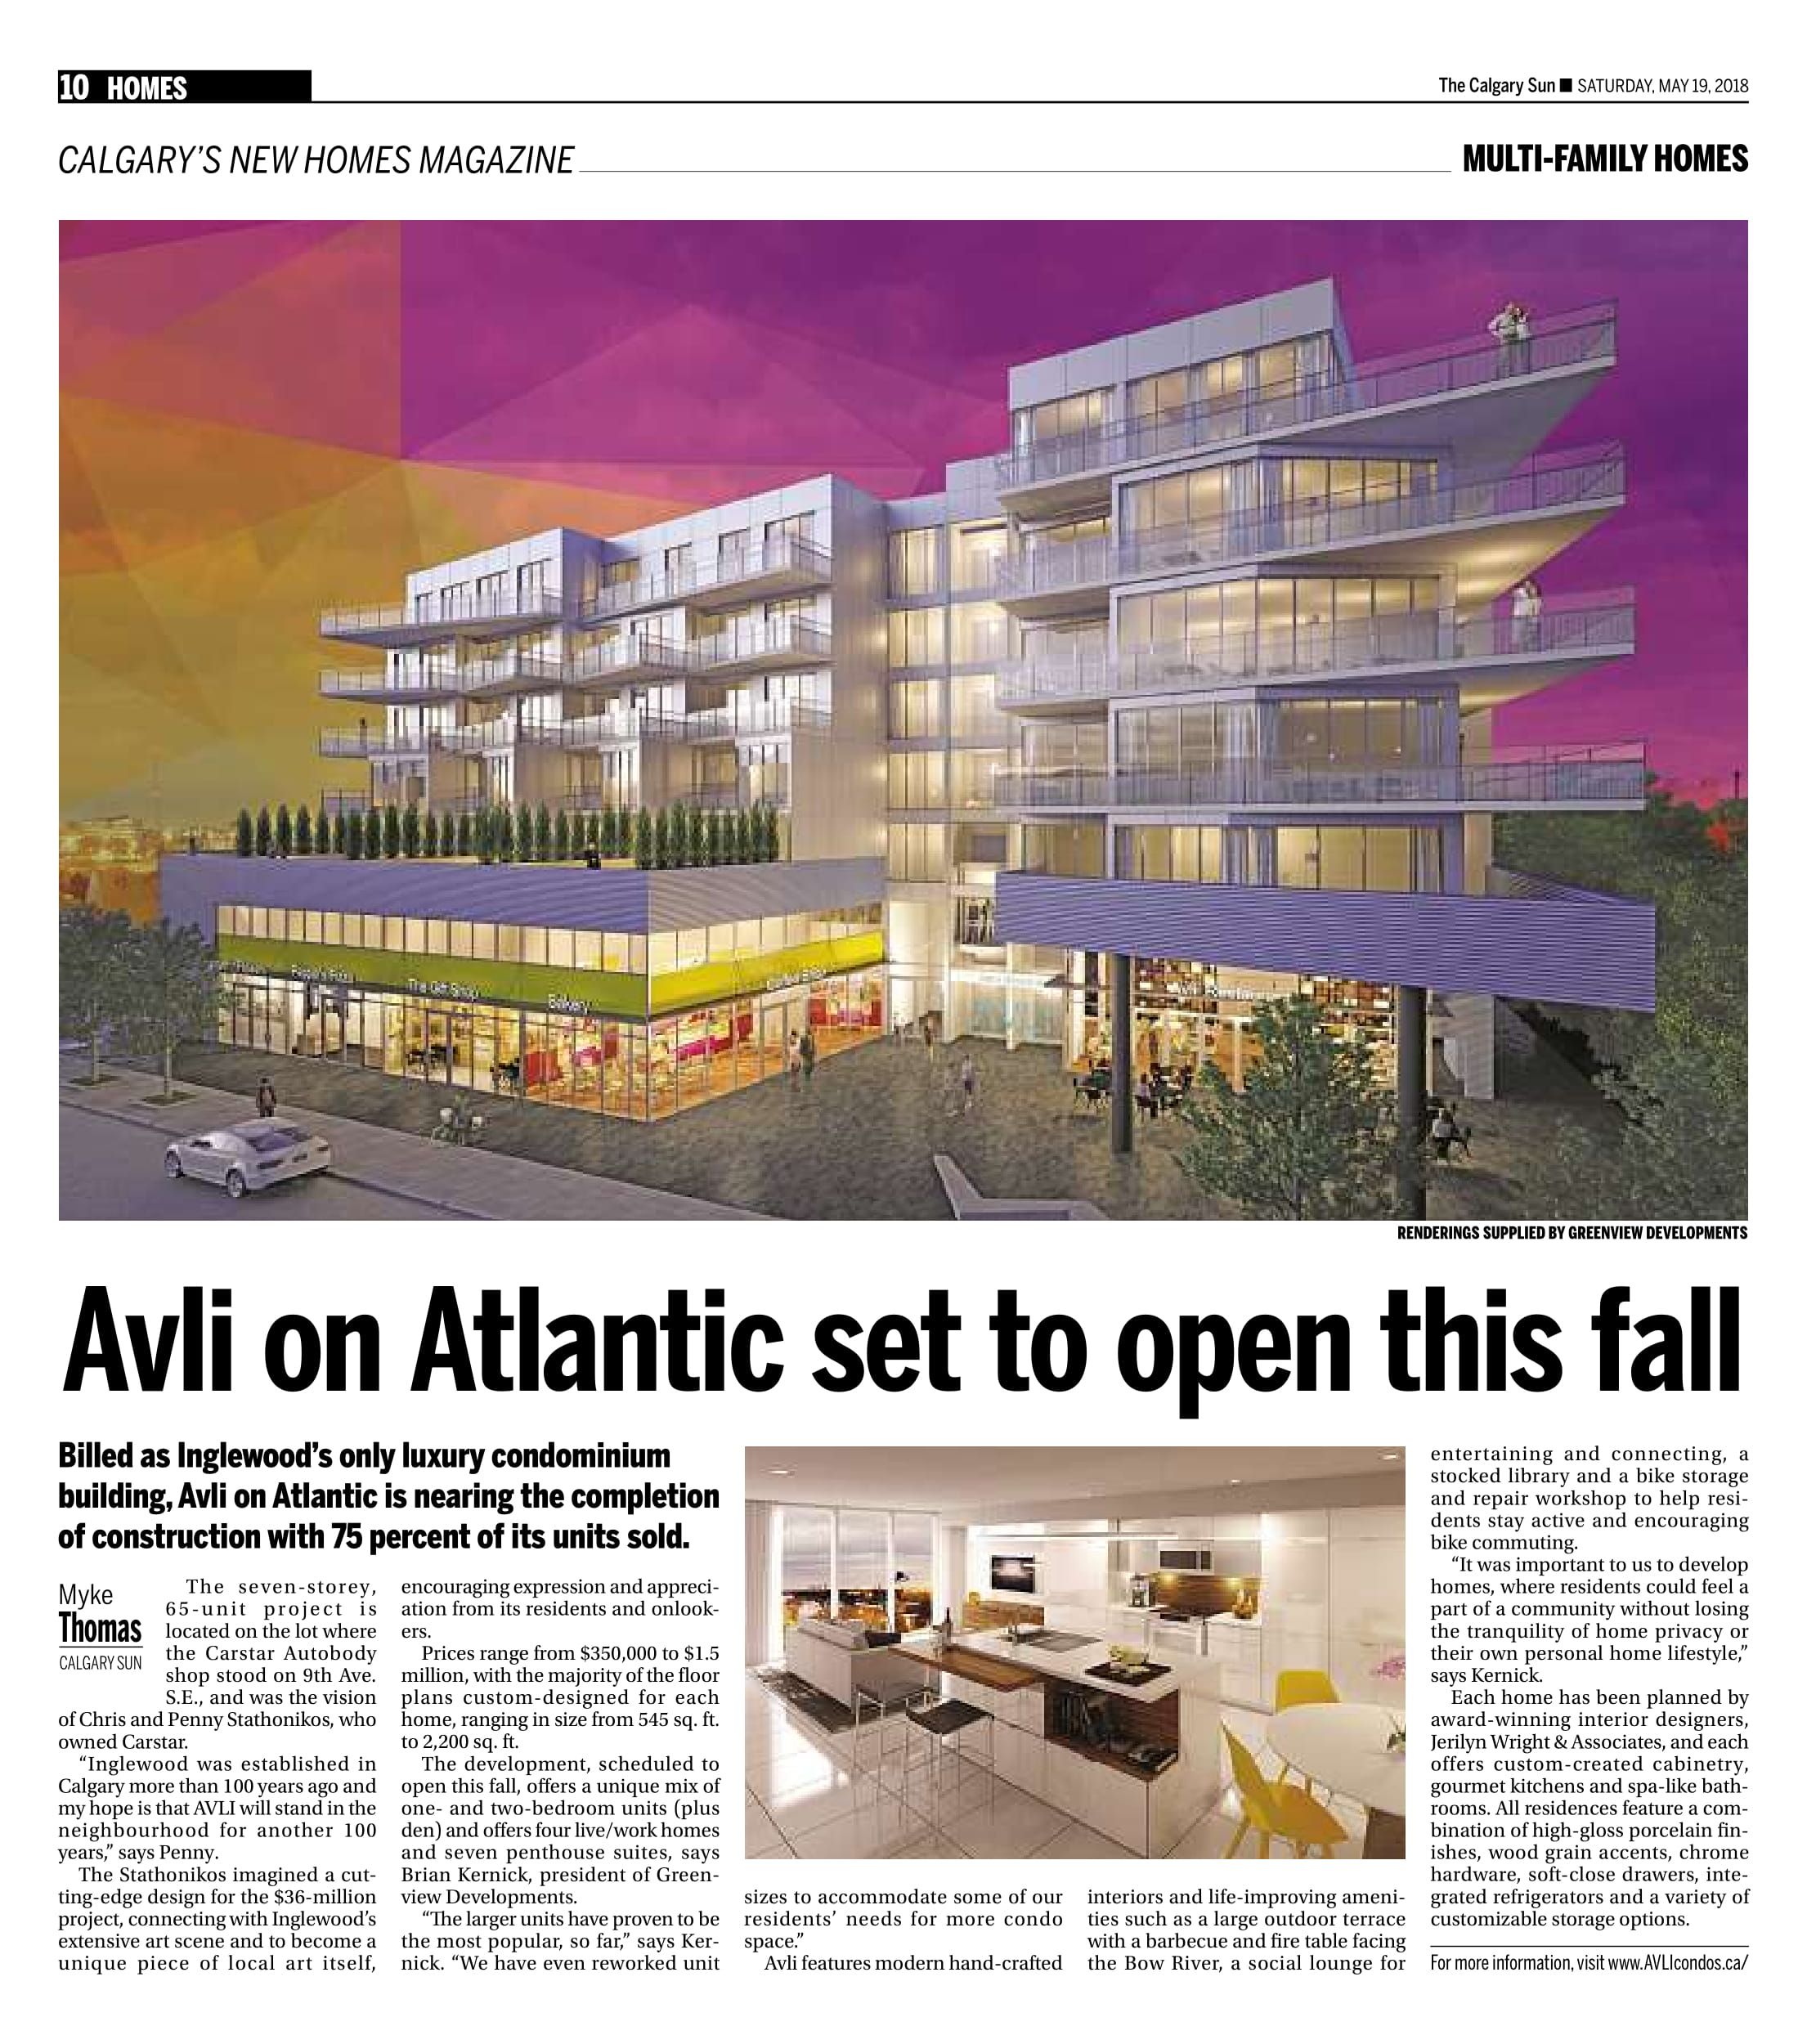 AVLI on Atlantic